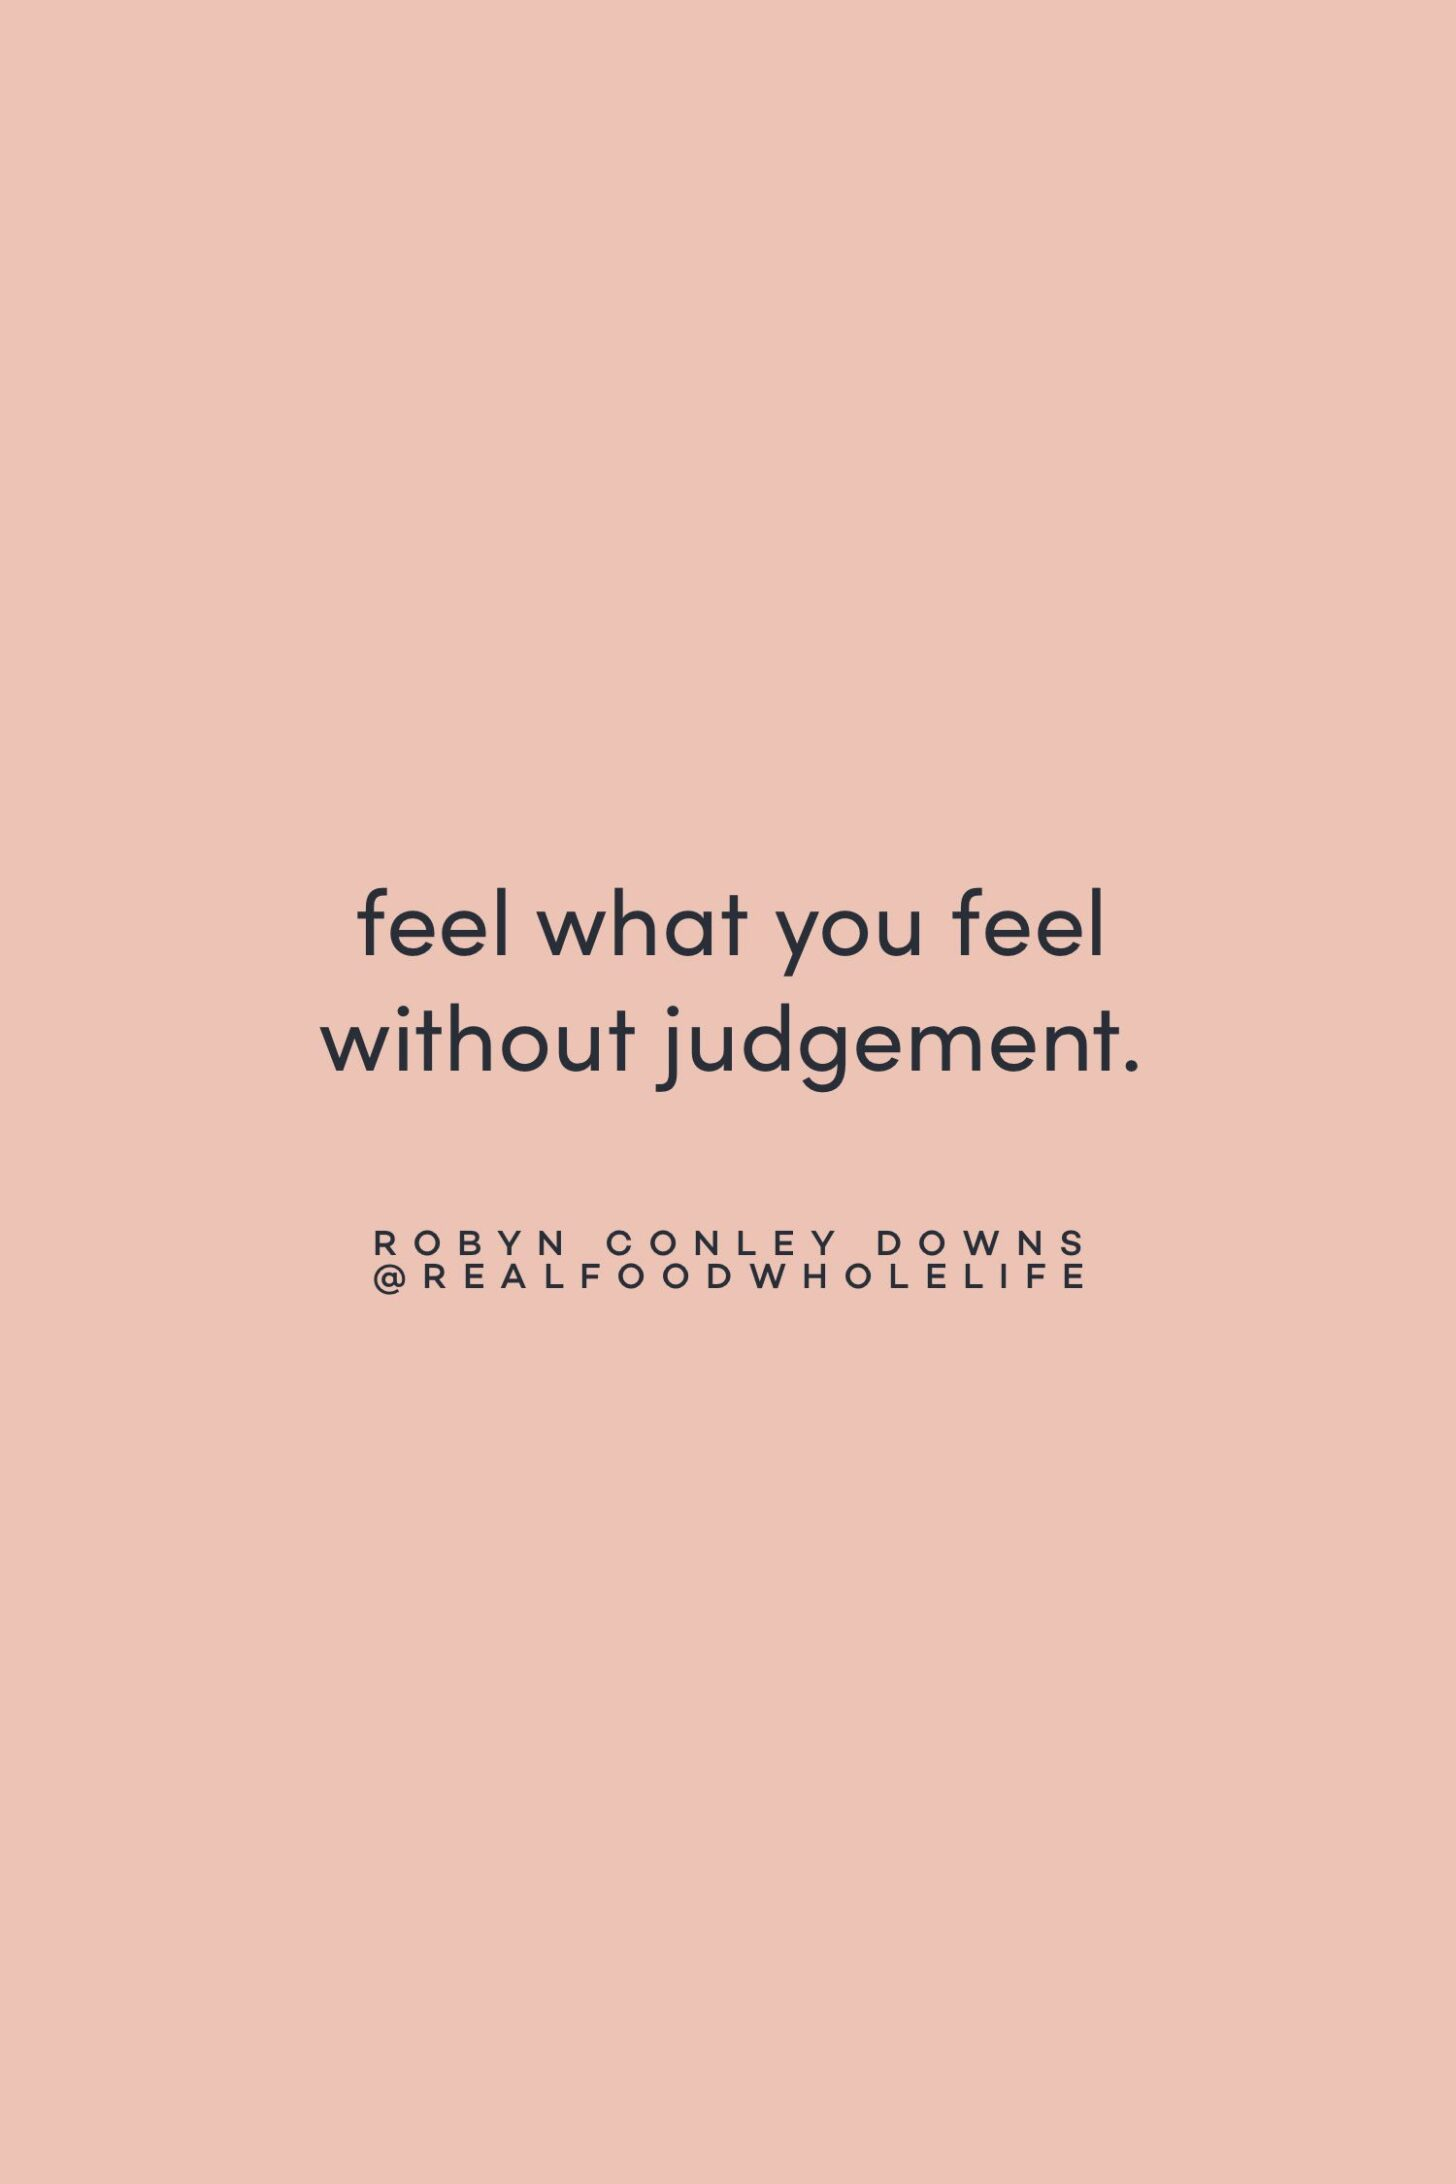 Quote on feeling without judgement by Robyn Conley Downs on the Feel Good Effect Podcast #realfoodwholelife #feelgoodeffectpodcast #realfoodwholelife #motivationalquote #inspirationalquote #positivityquote #feelgoodquote #nonjudgementquote #selfcompassionquote #selfcarequote #selflovequote #healingquote #feelingquote